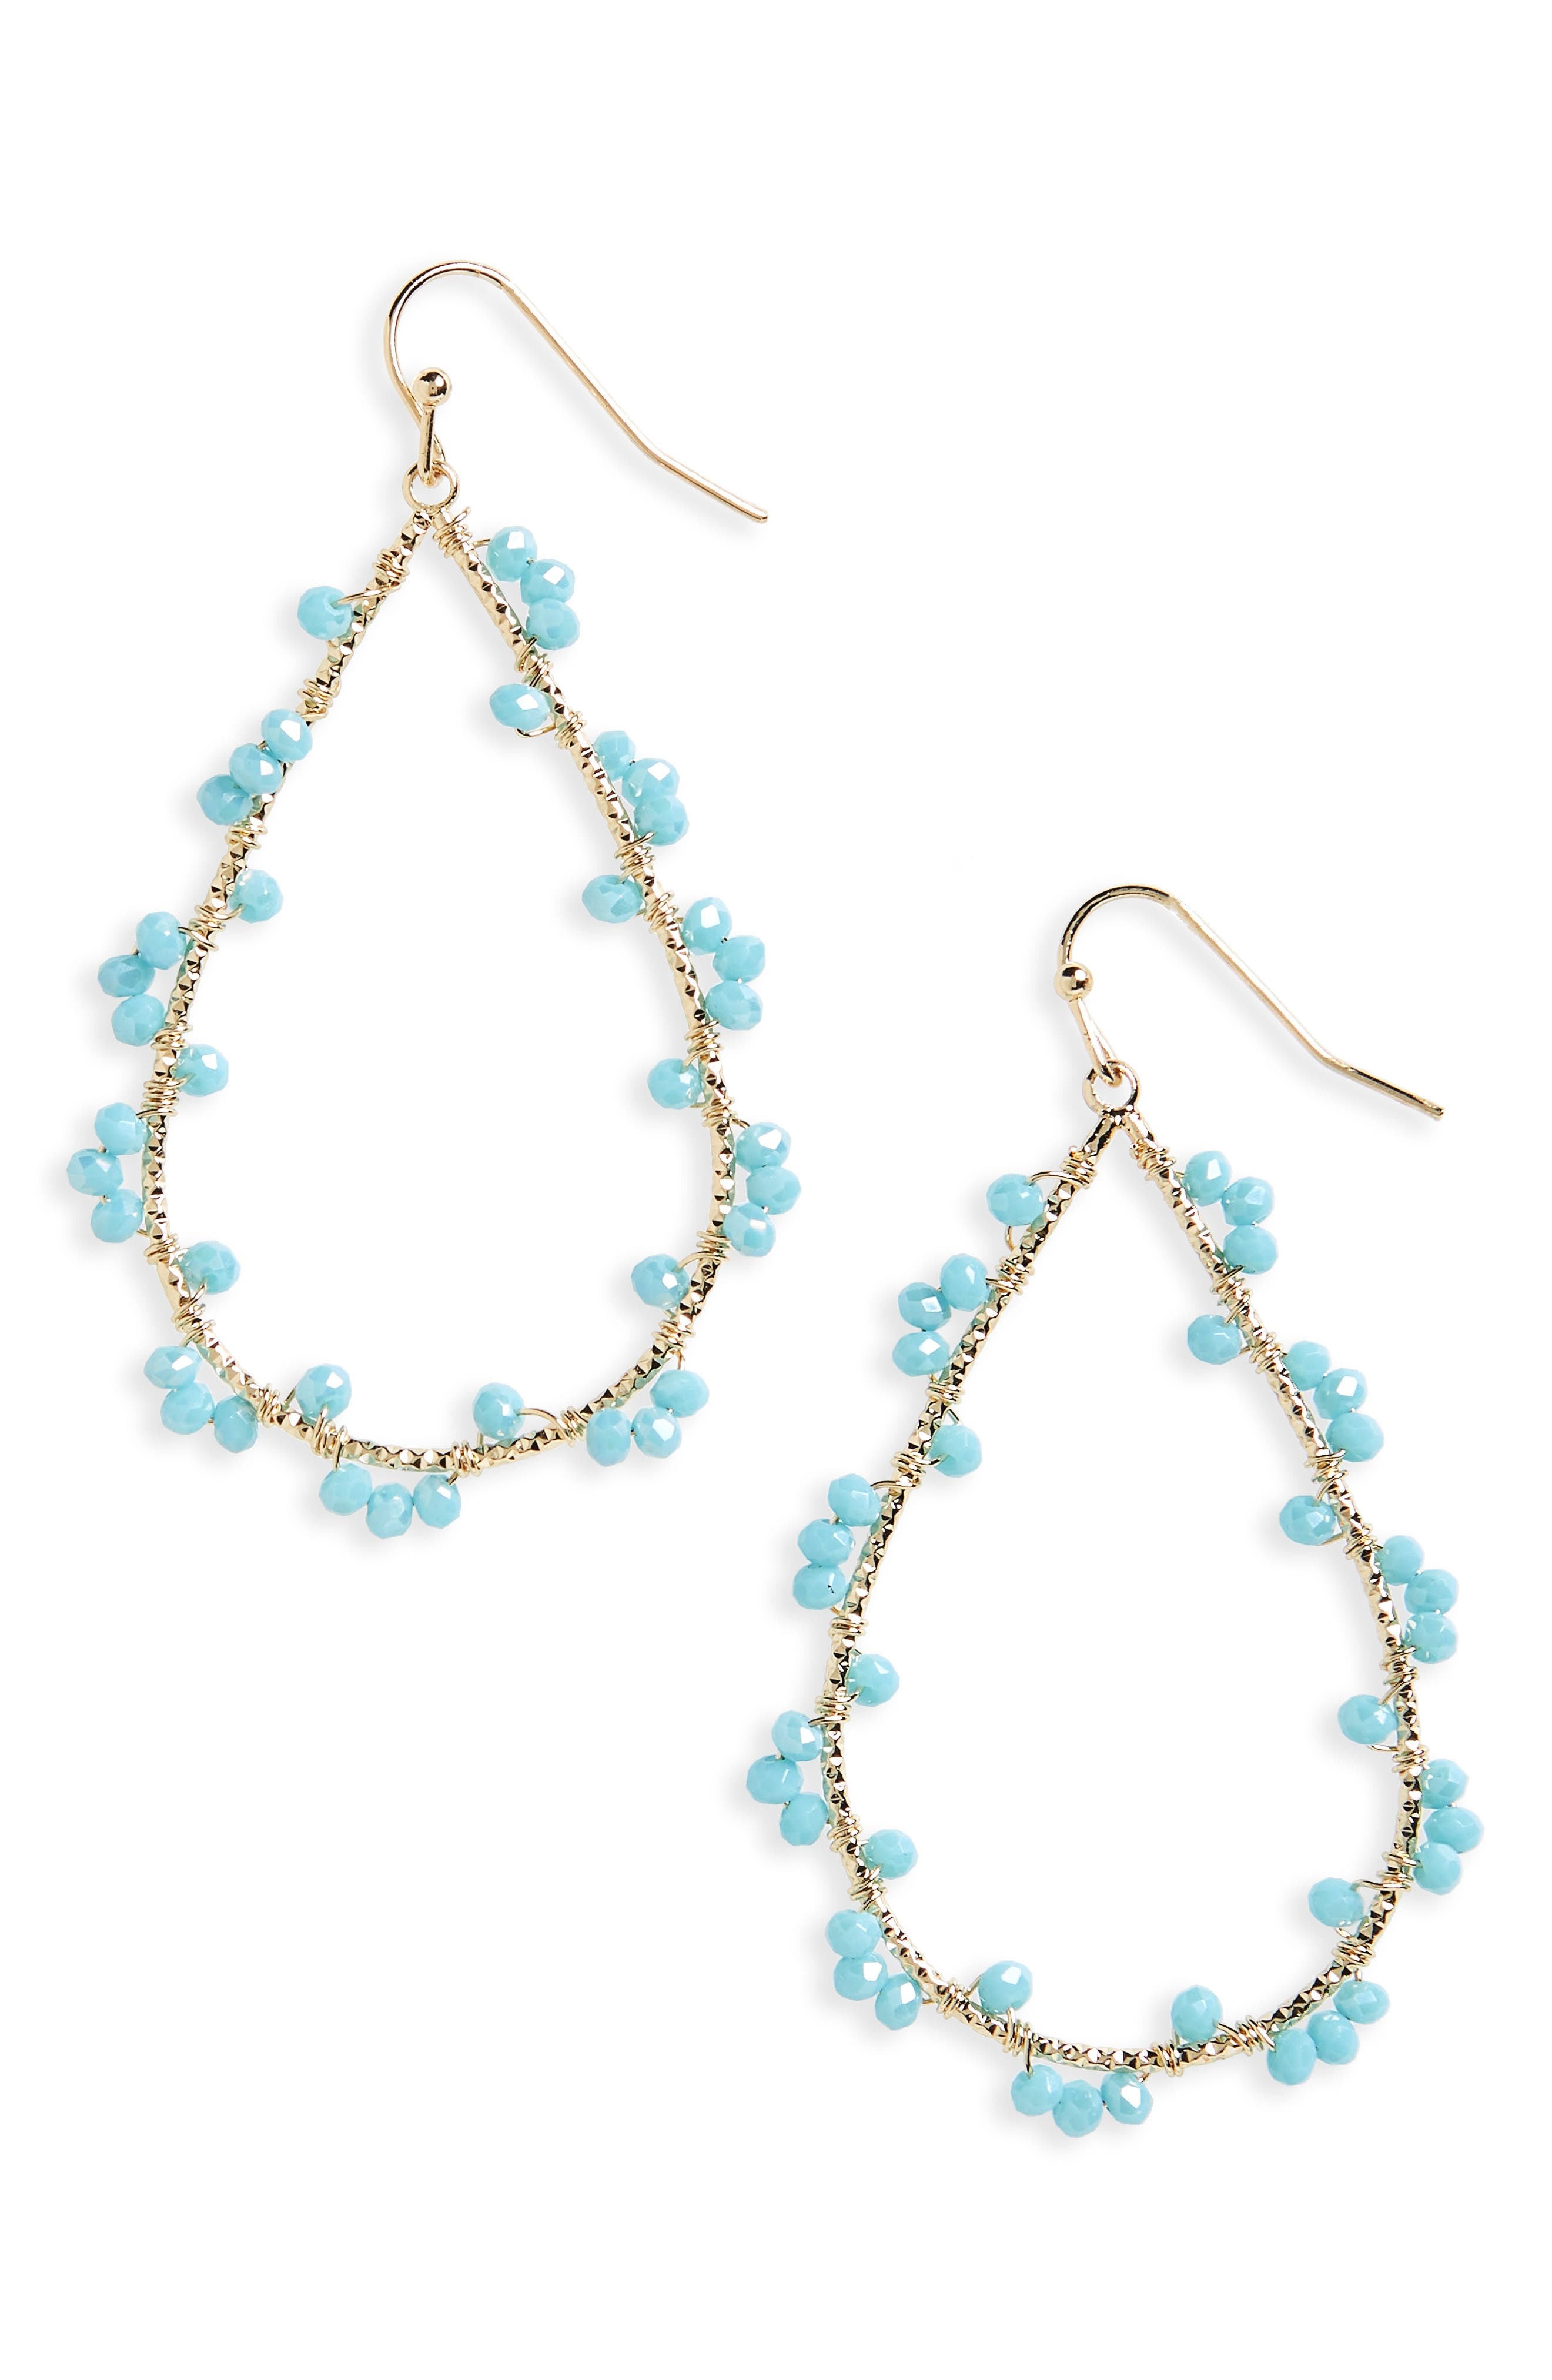 Wired Glass Bead Teardrop Earrings,                         Main,                         color,